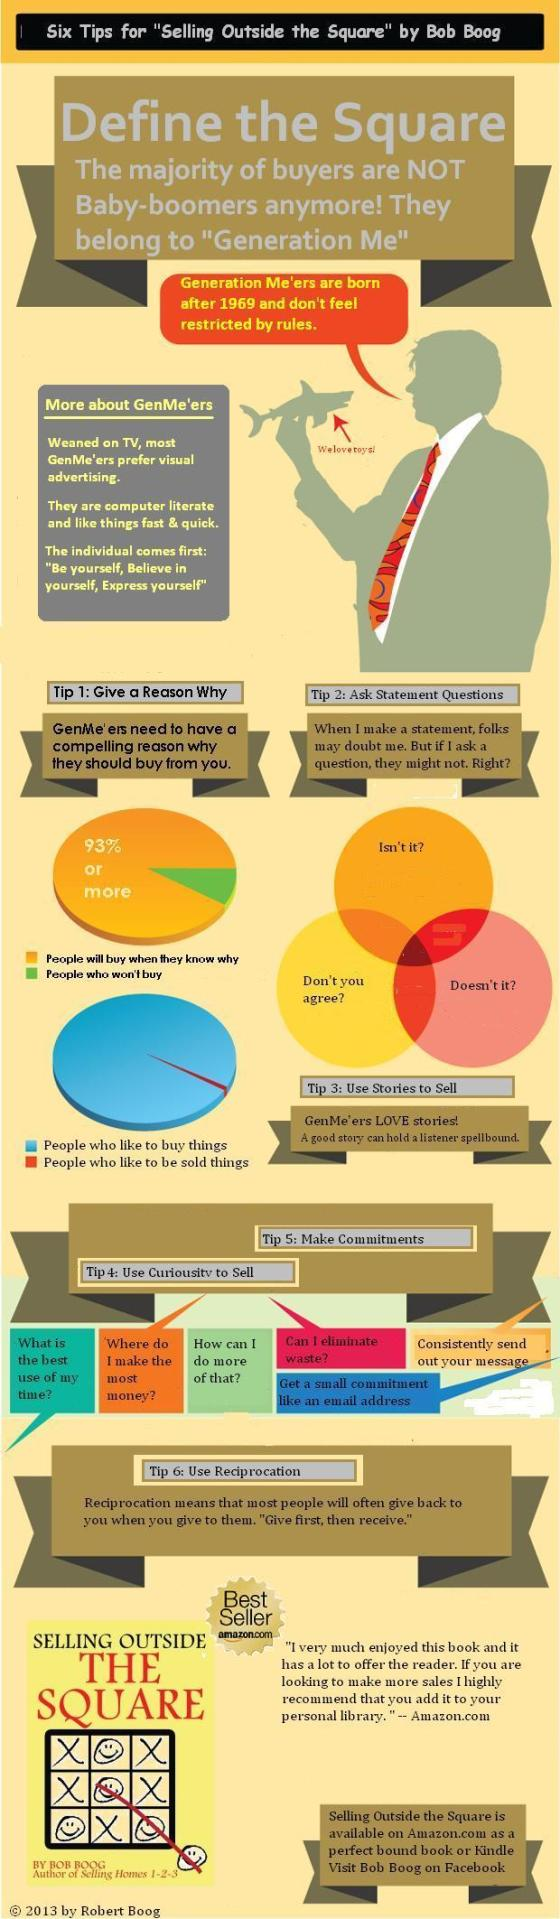 Infographic : About Selling Outside the Square by Bob Boog